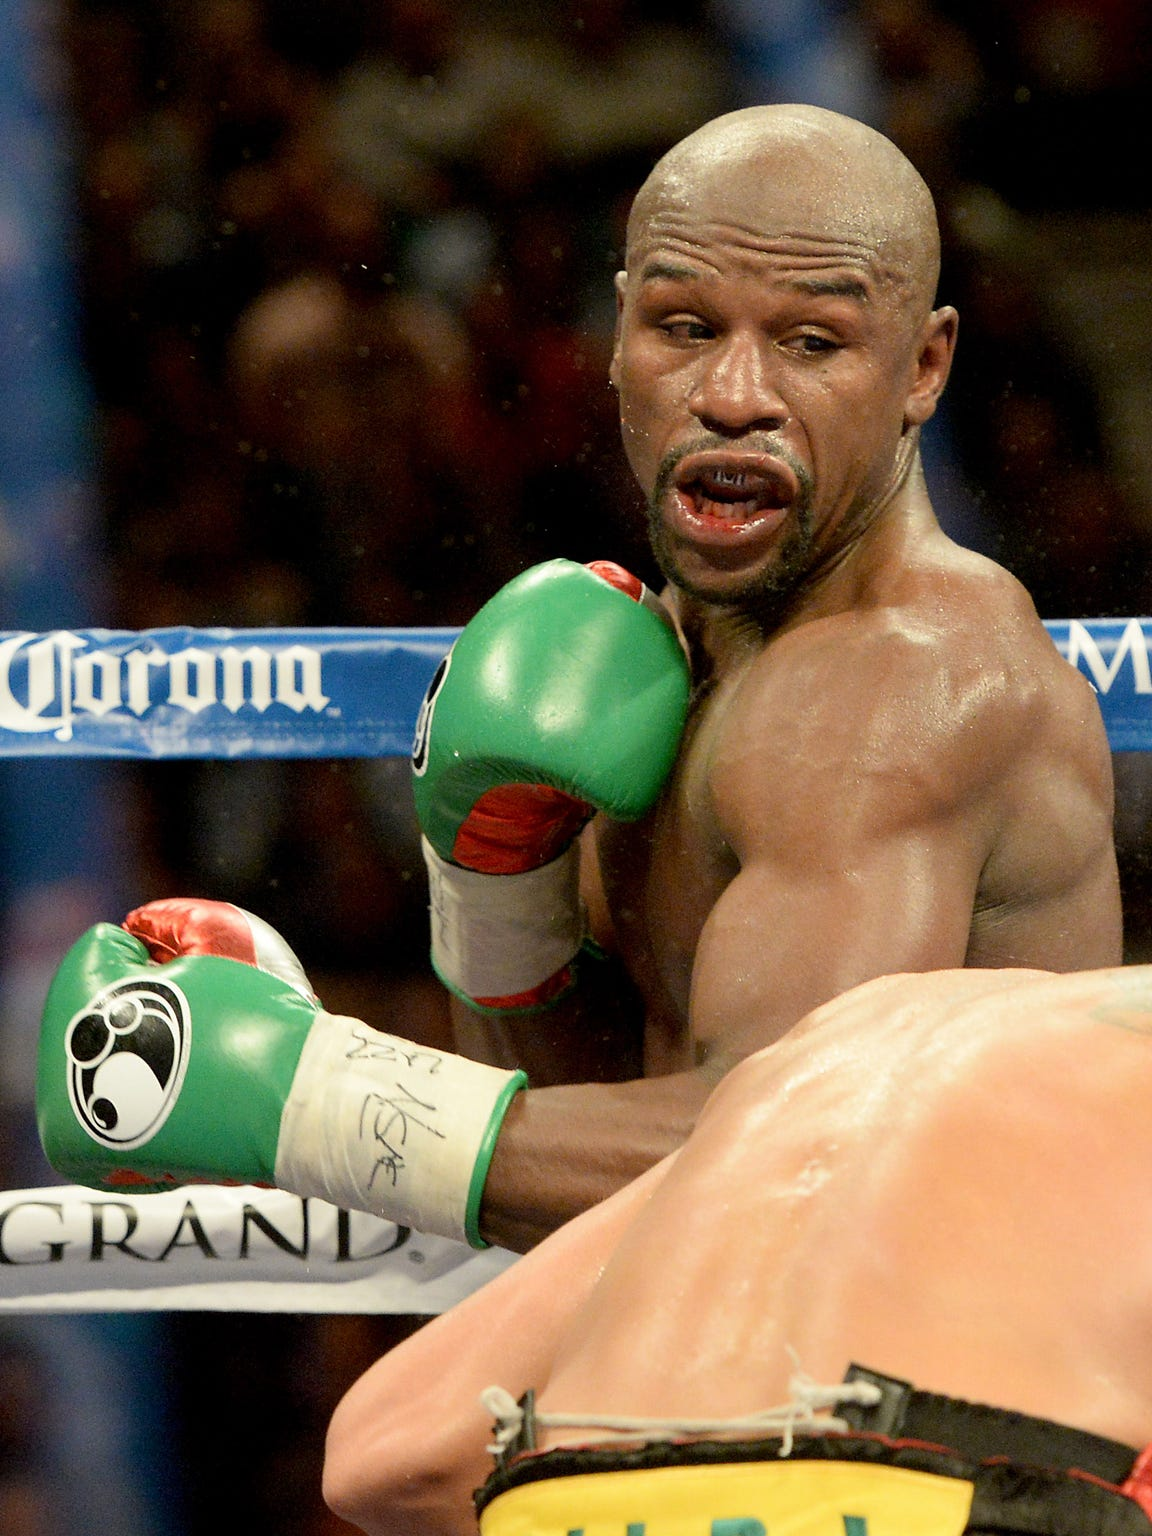 Floyd Mayweather was sentenced to 90 days in prison